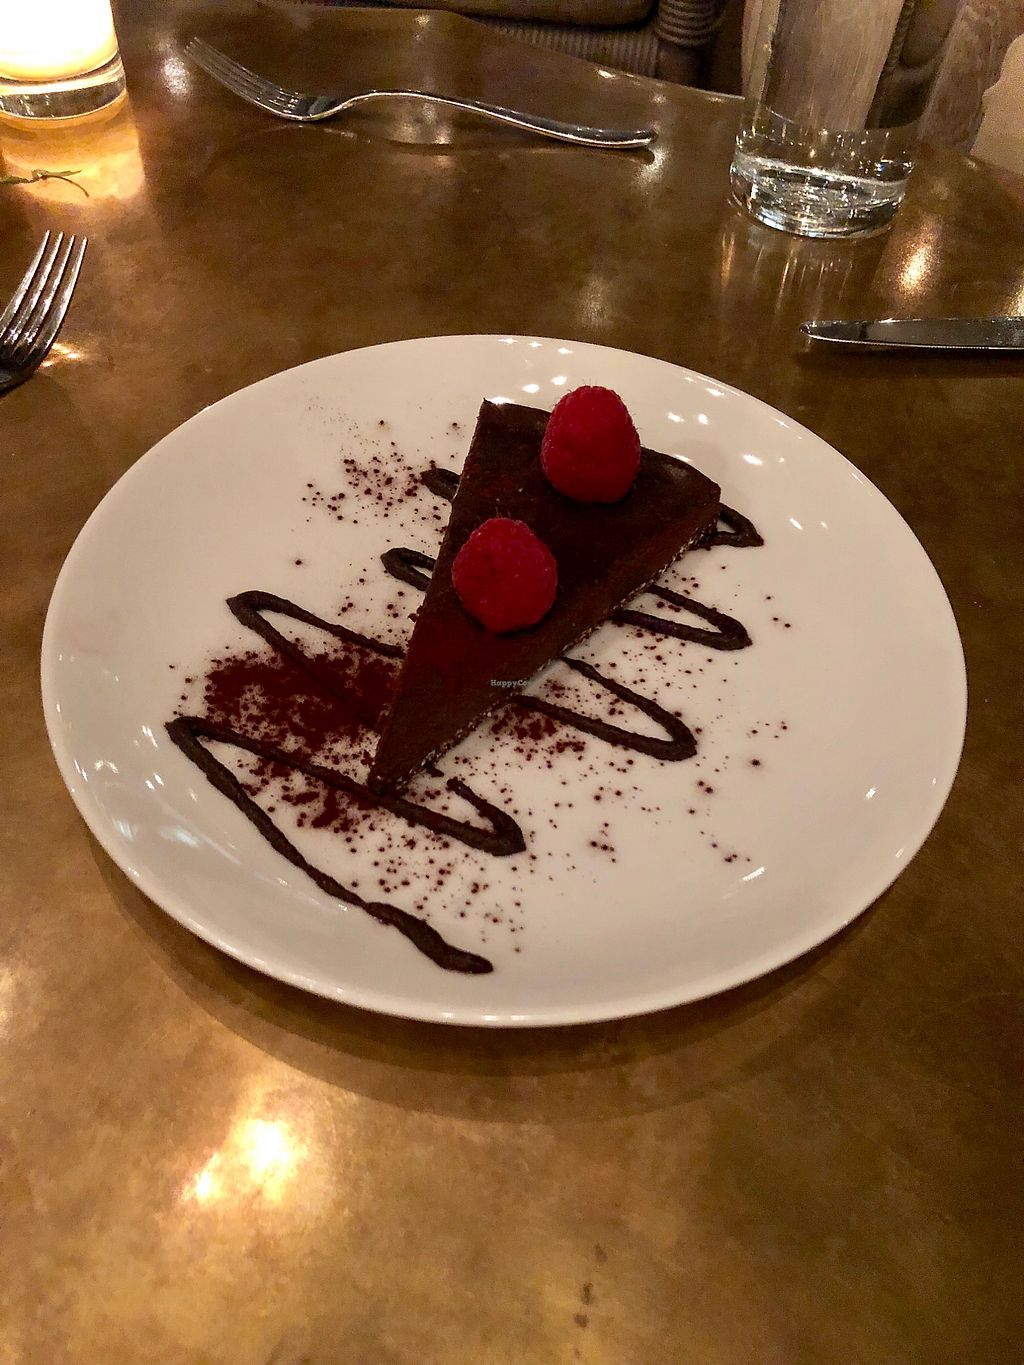 "Photo of Oliver's  by <a href=""/members/profile/Bariann"">Bariann</a> <br/>Chocolate Tart with Raspberries <br/> May 12, 2018  - <a href='/contact/abuse/image/102075/398900'>Report</a>"